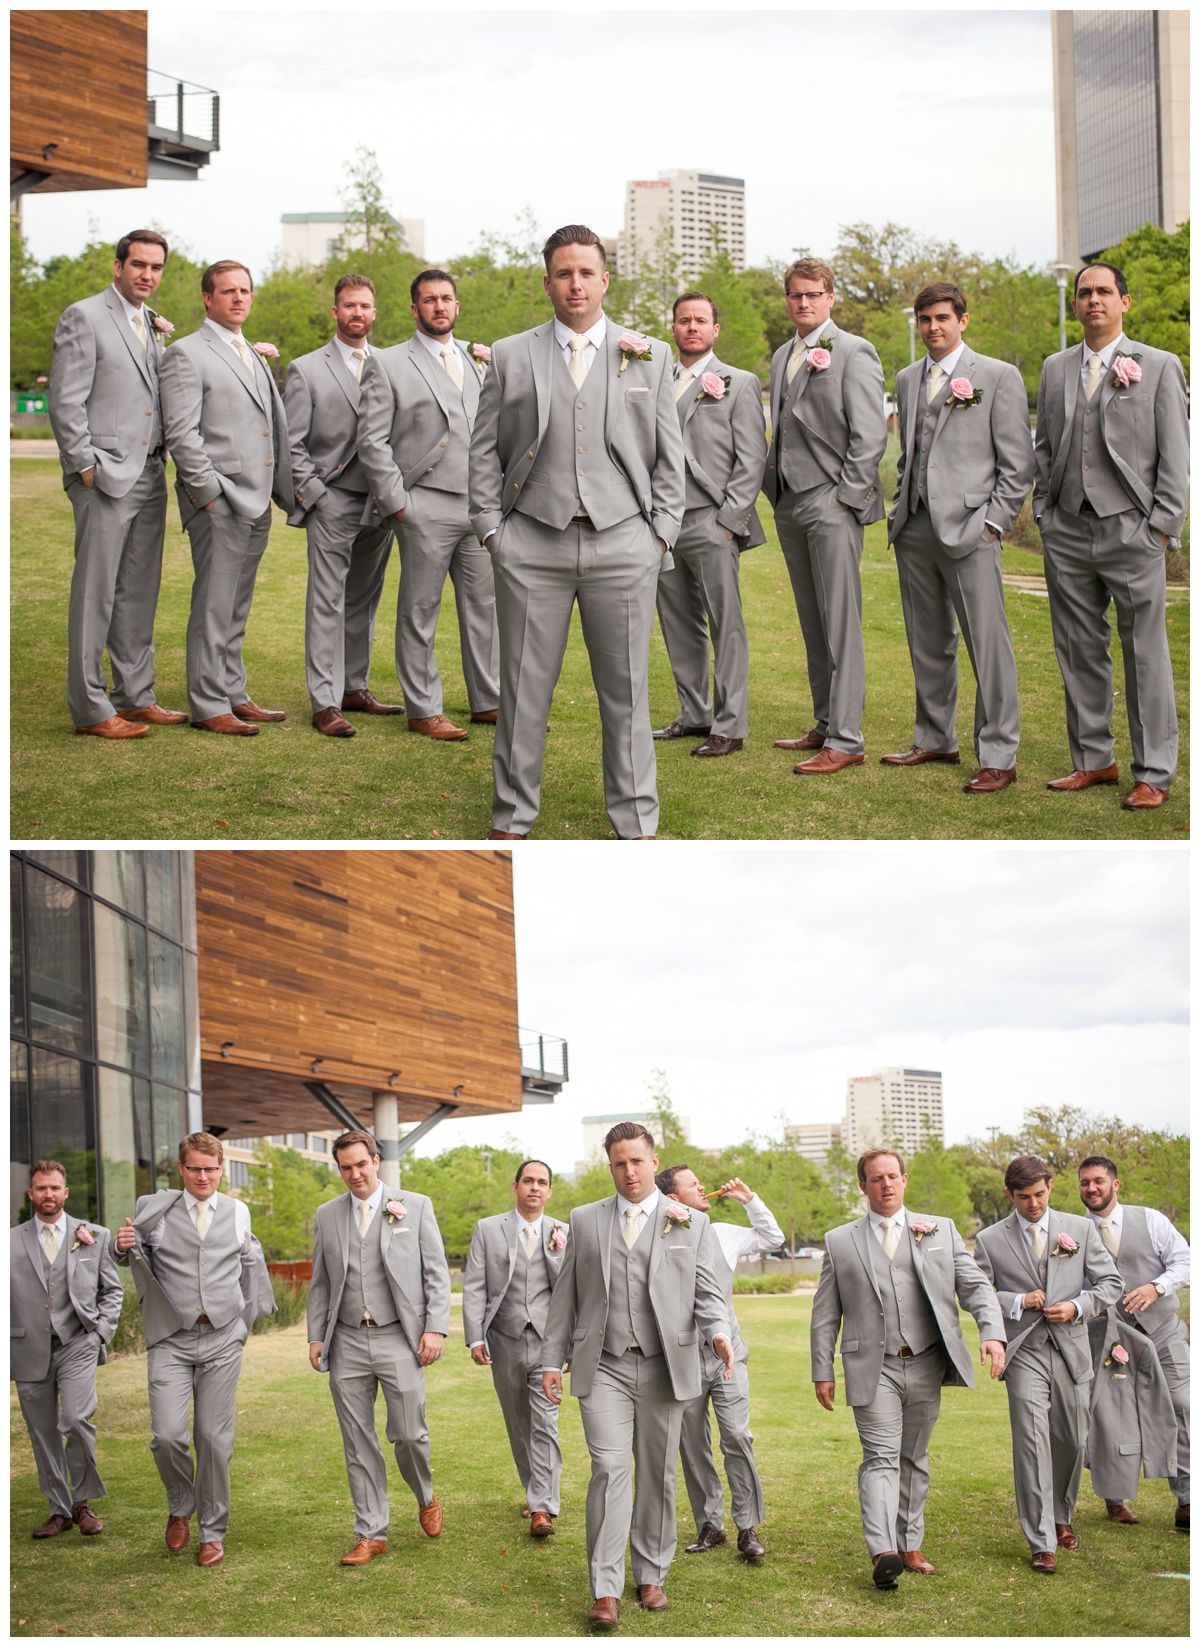 These guys kept me laughing all the way through their pictures!!!!